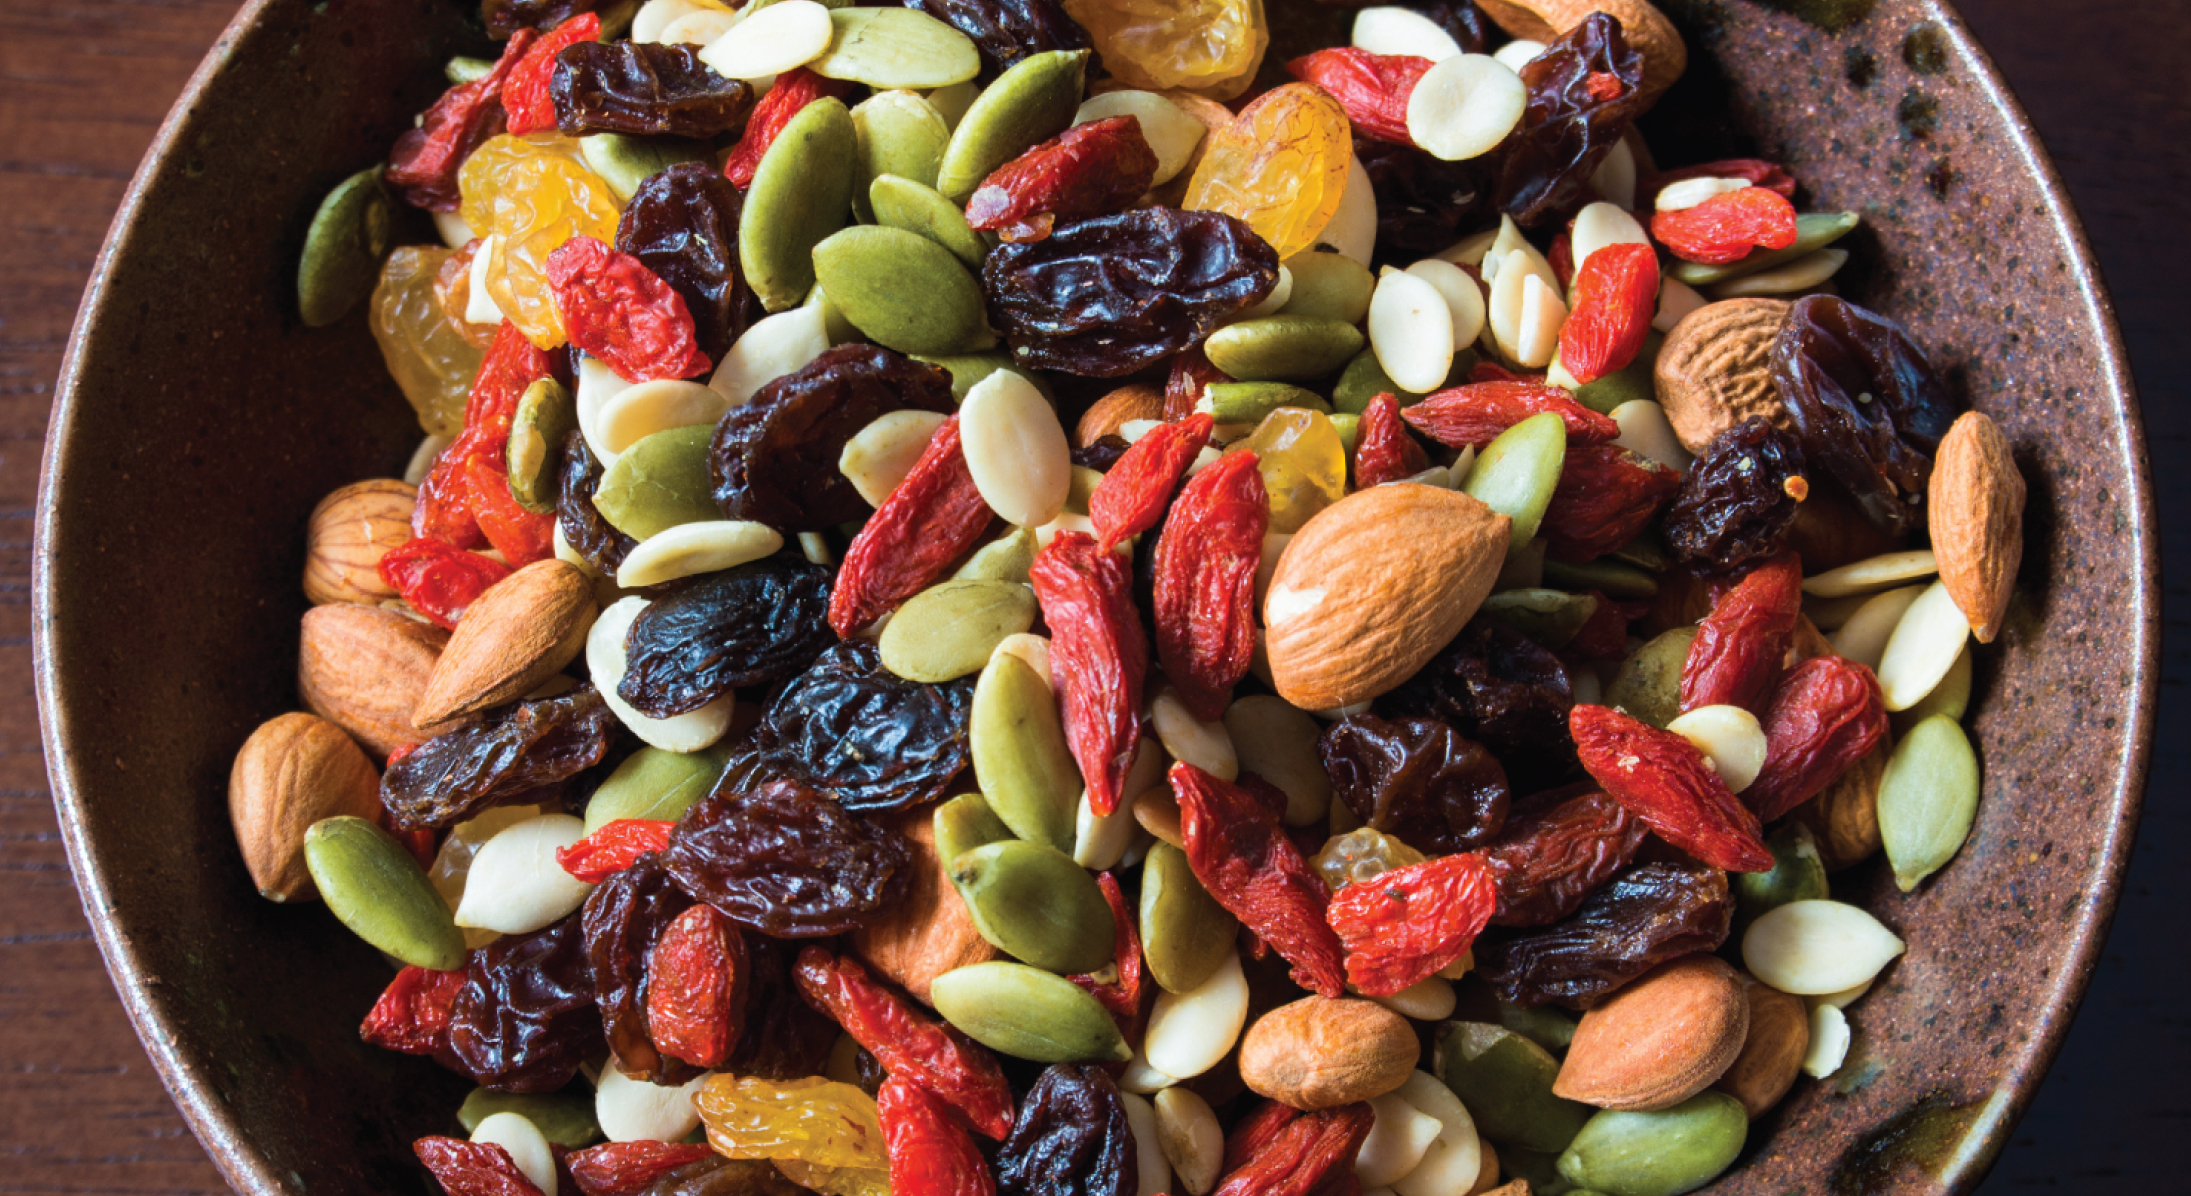 Shiloh Farms Superfood Trail Mix